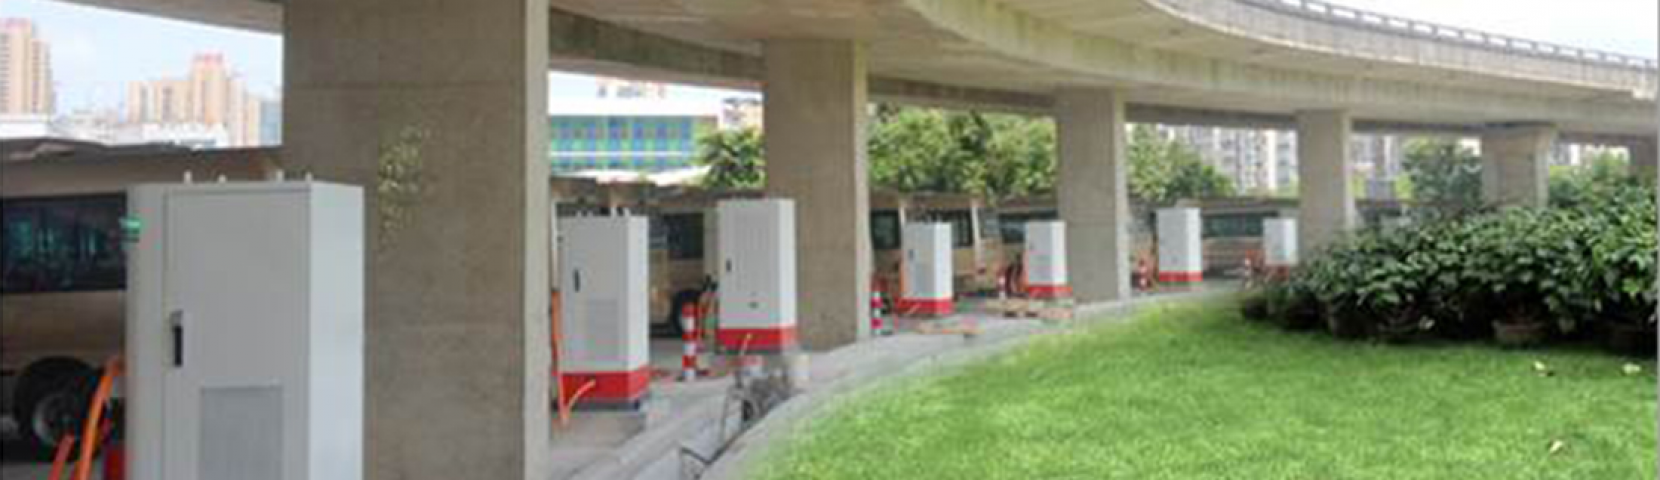 Bus Charging Stations in Multiple Areas of Fujian, China